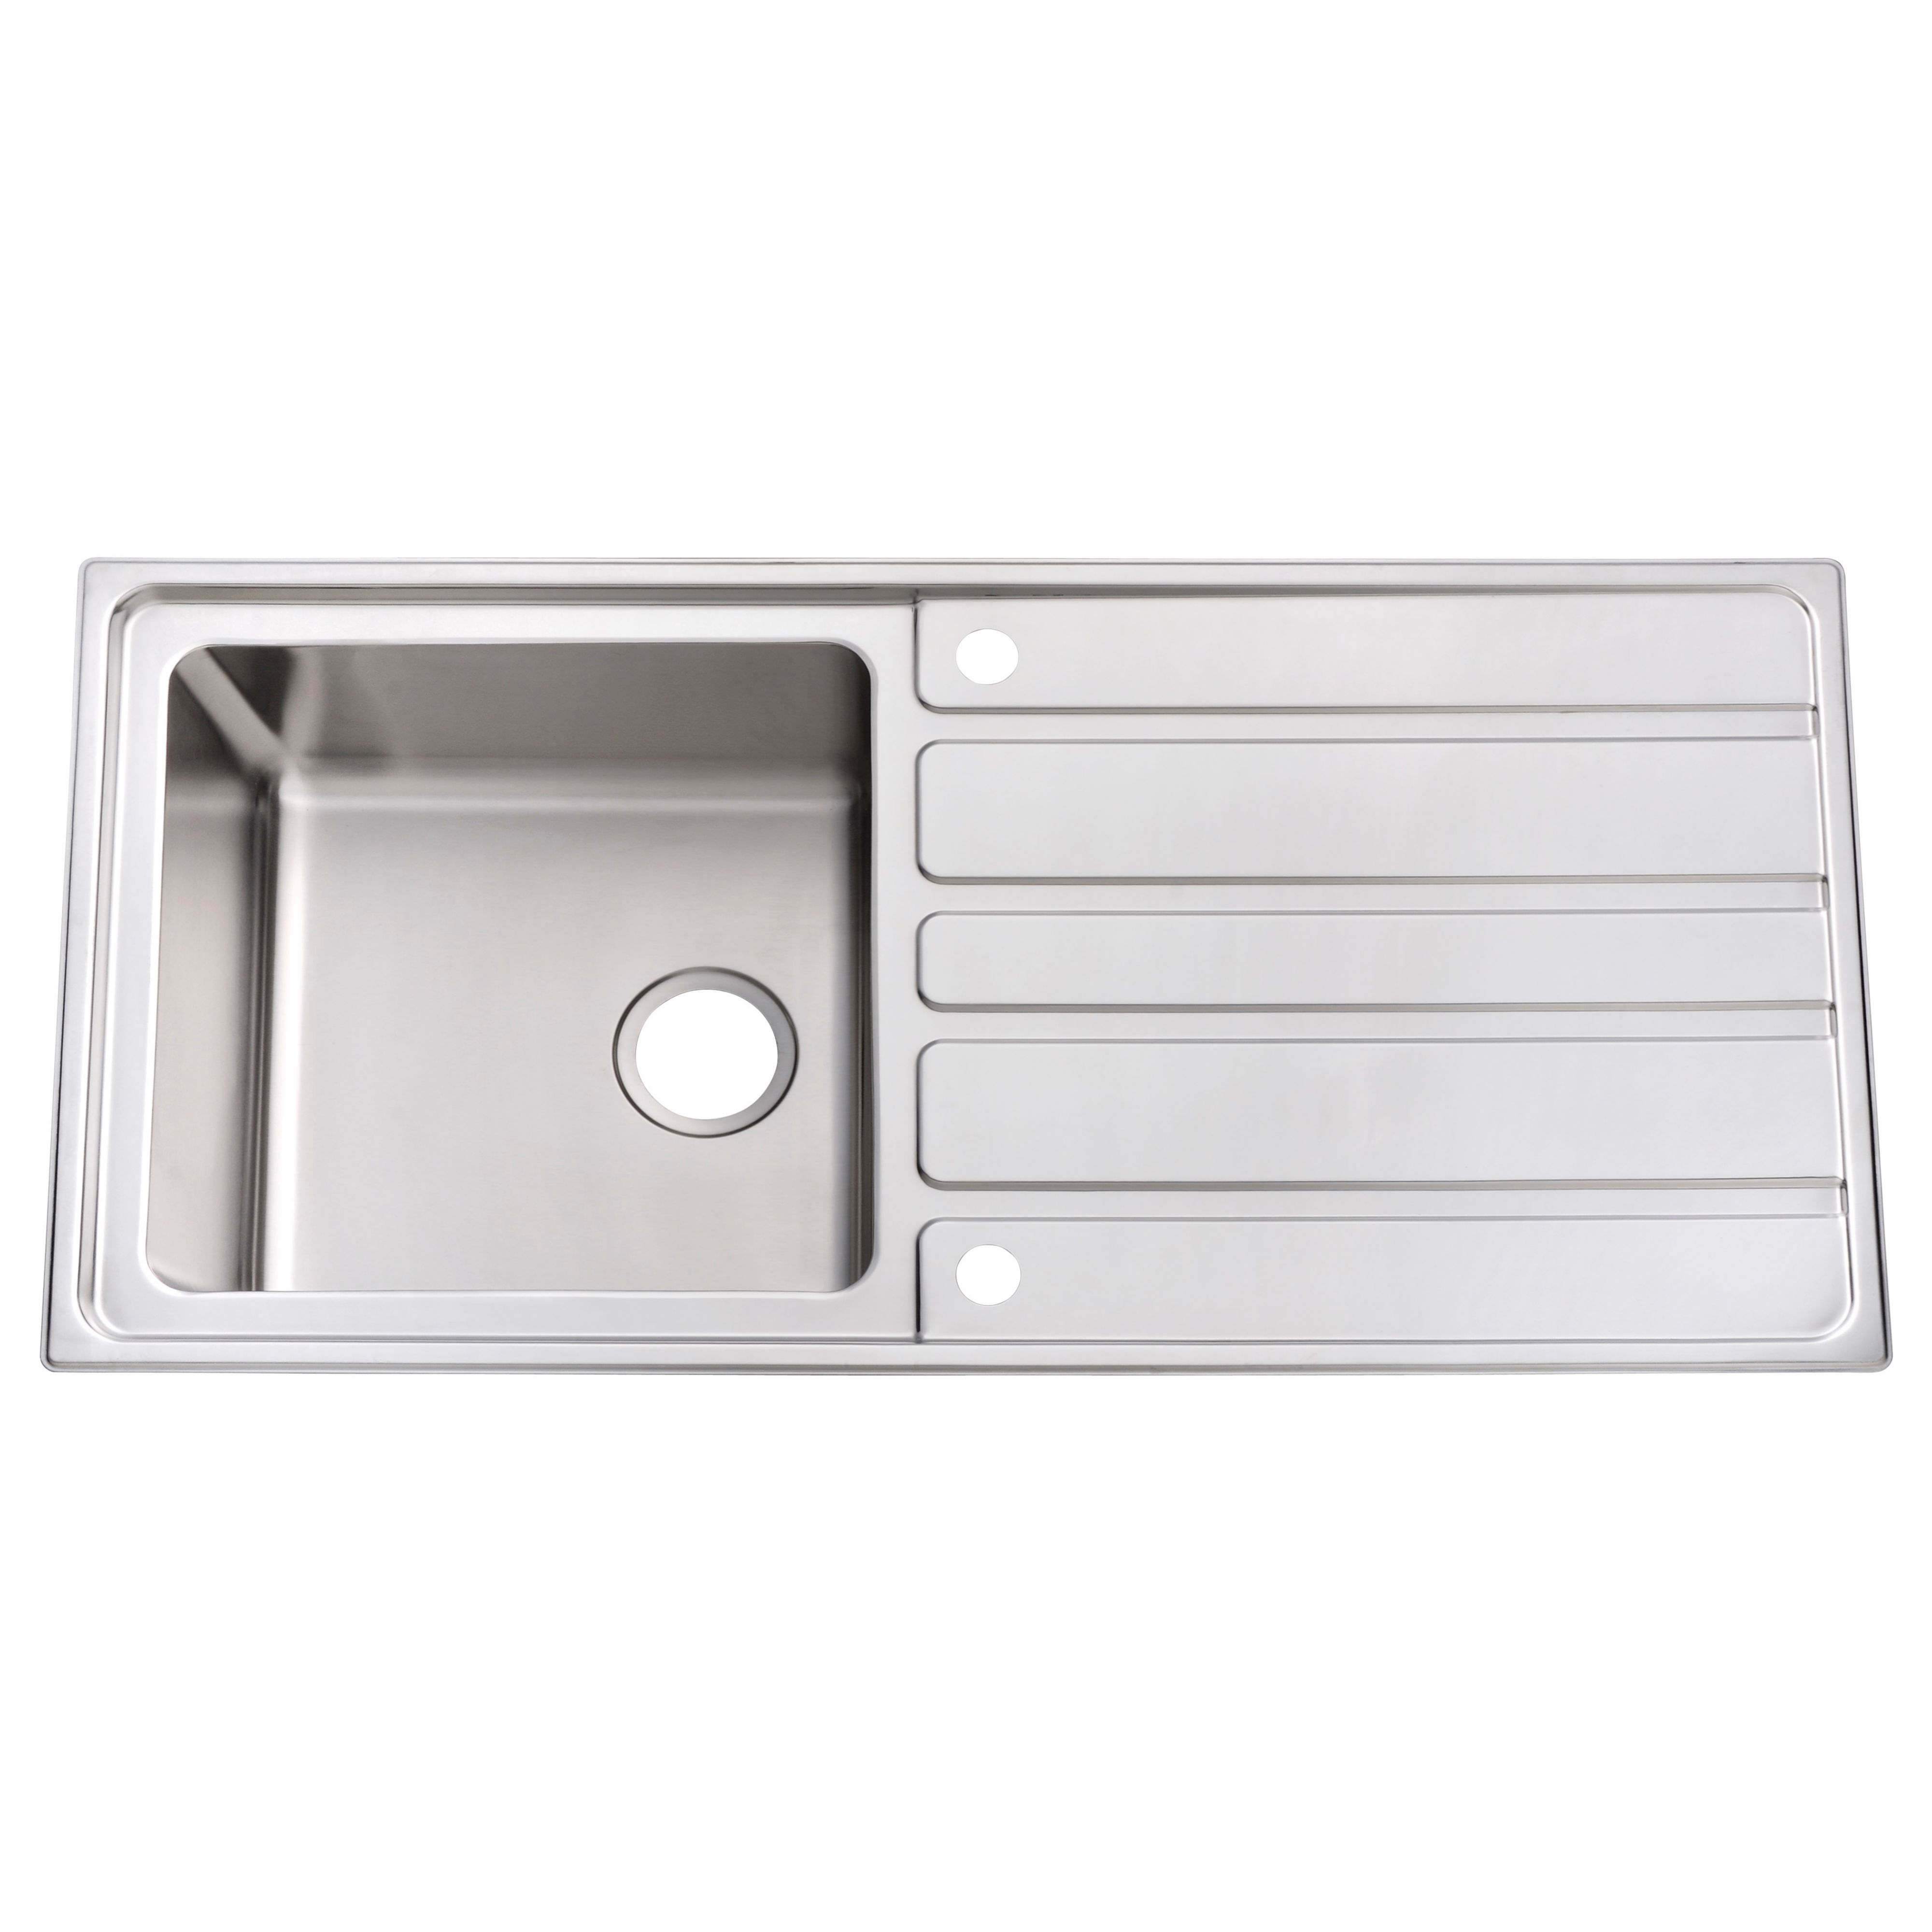 Blanco Toga 1 Bowl Stainless Steel Compact Sink Amp Drainer